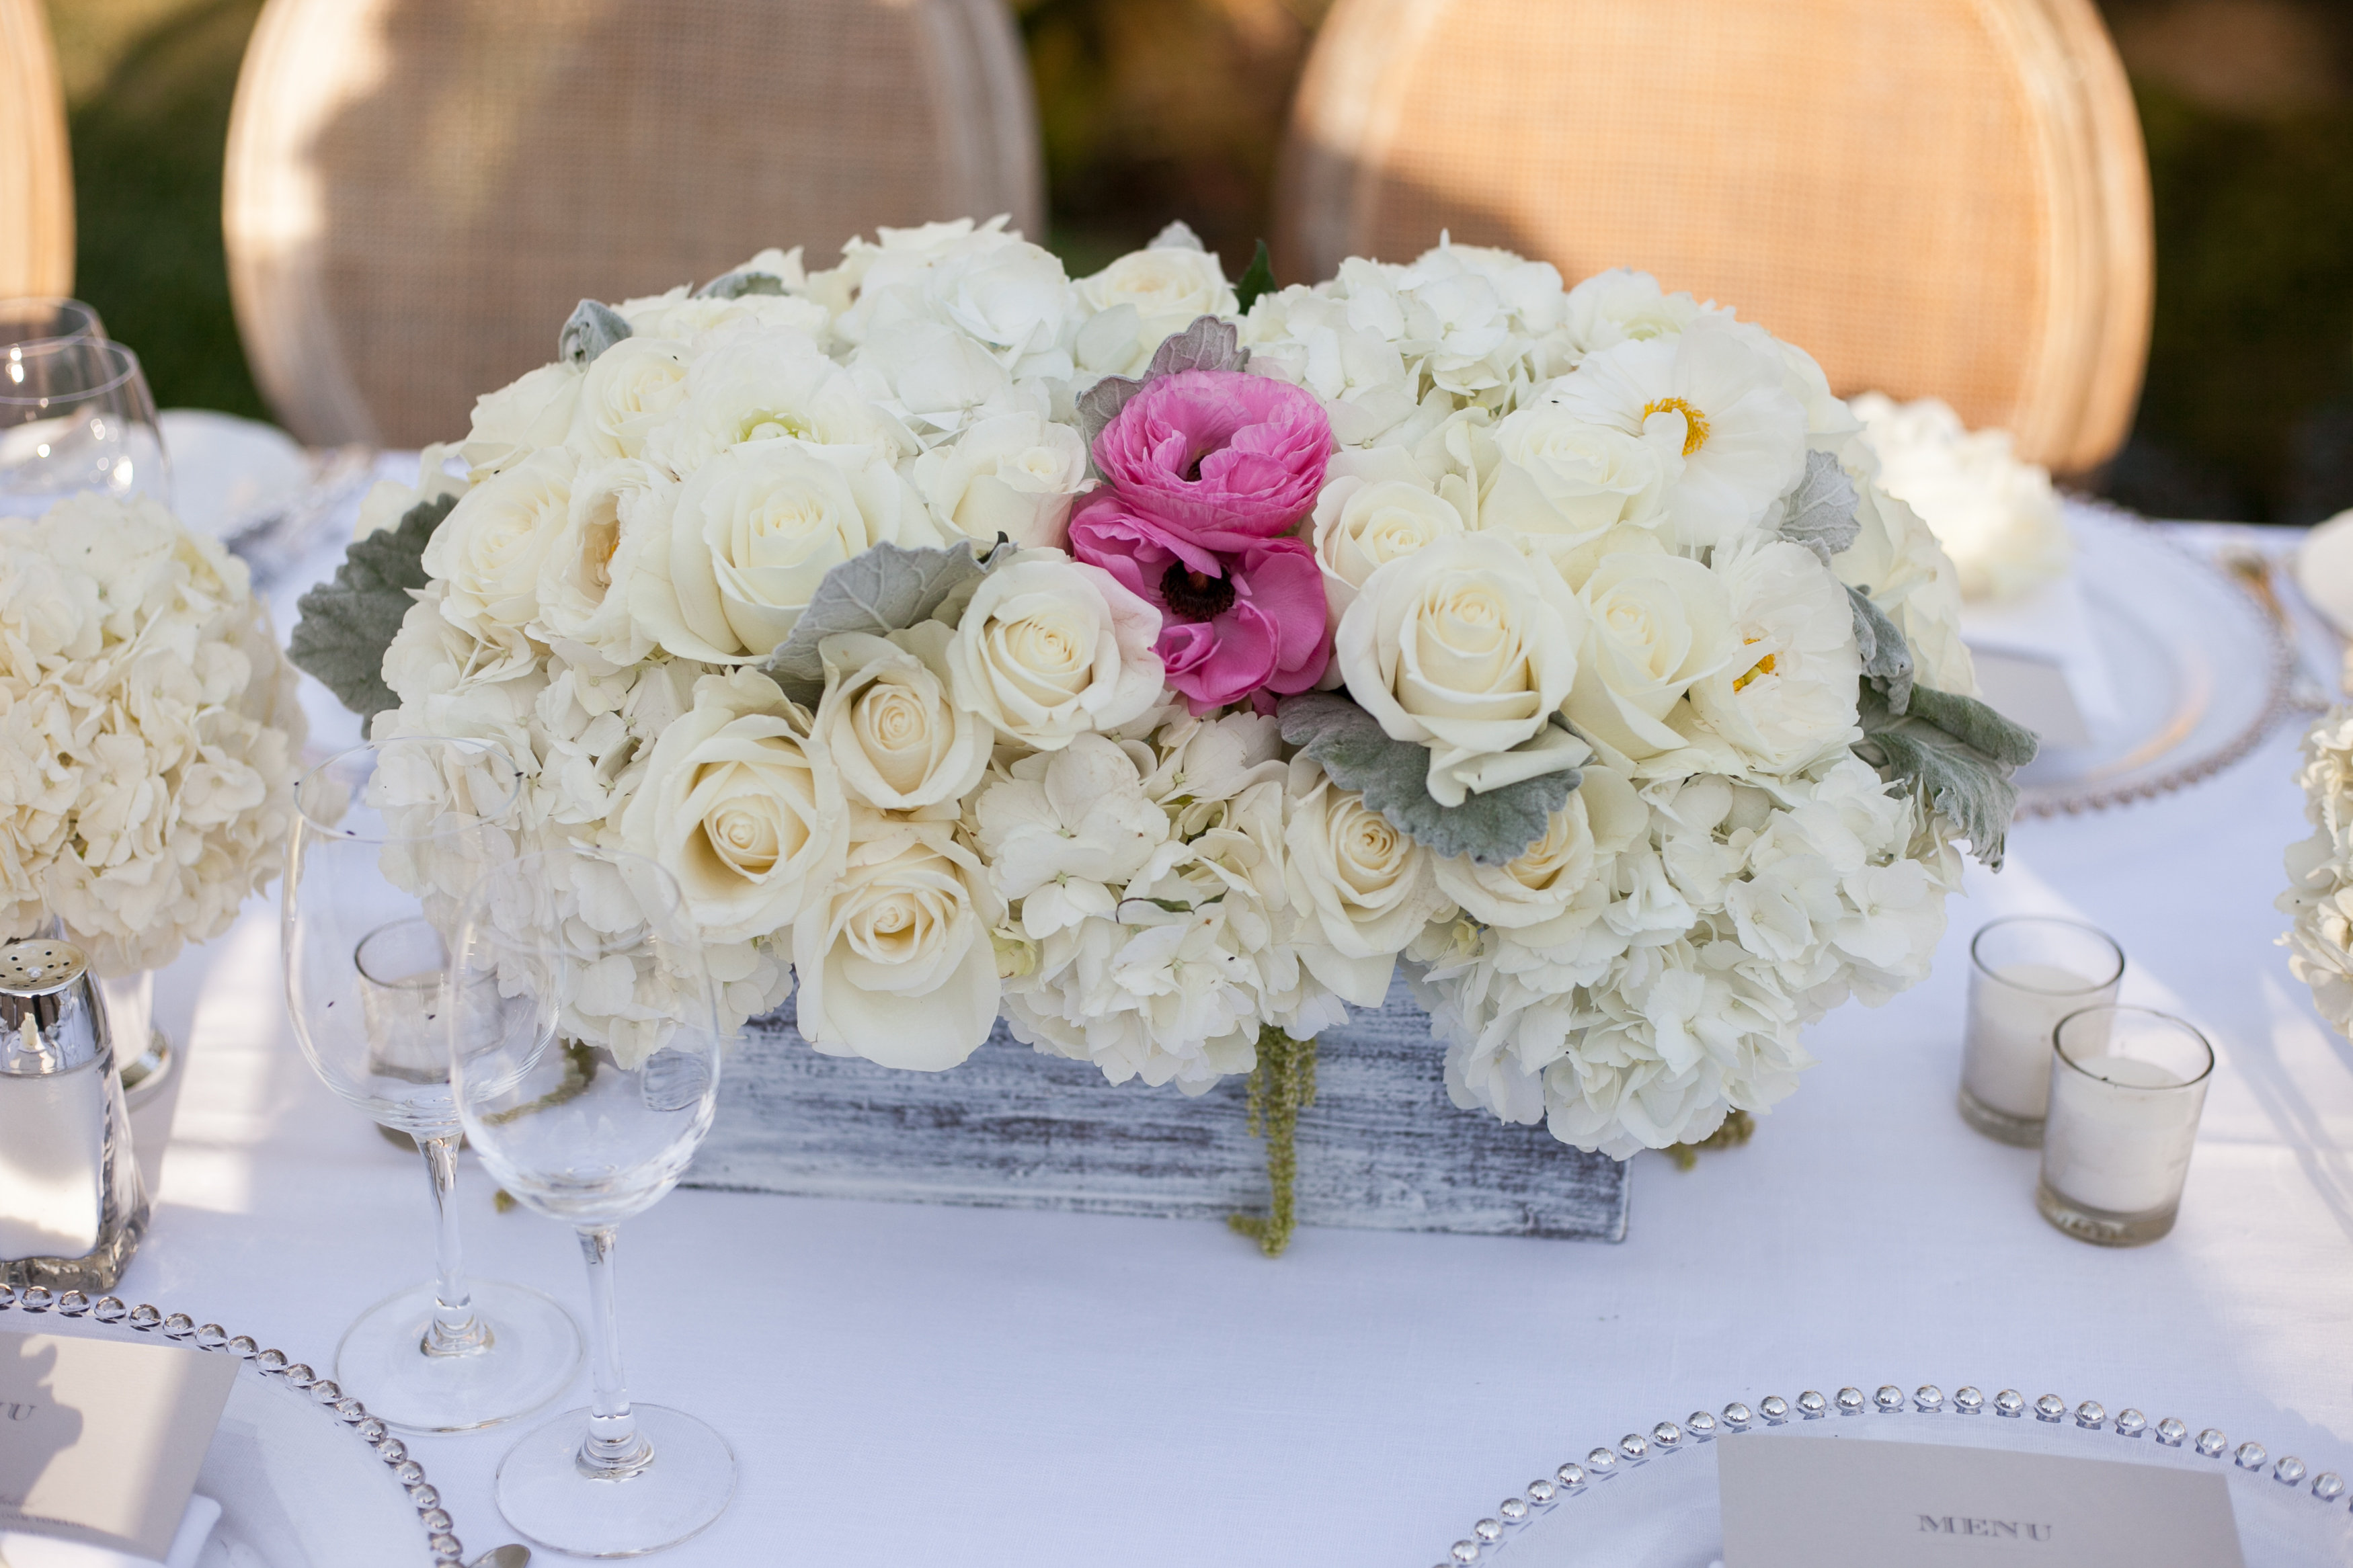 hot pink rose white hydrangea centerpiece wedding los angeles four seasons westlake